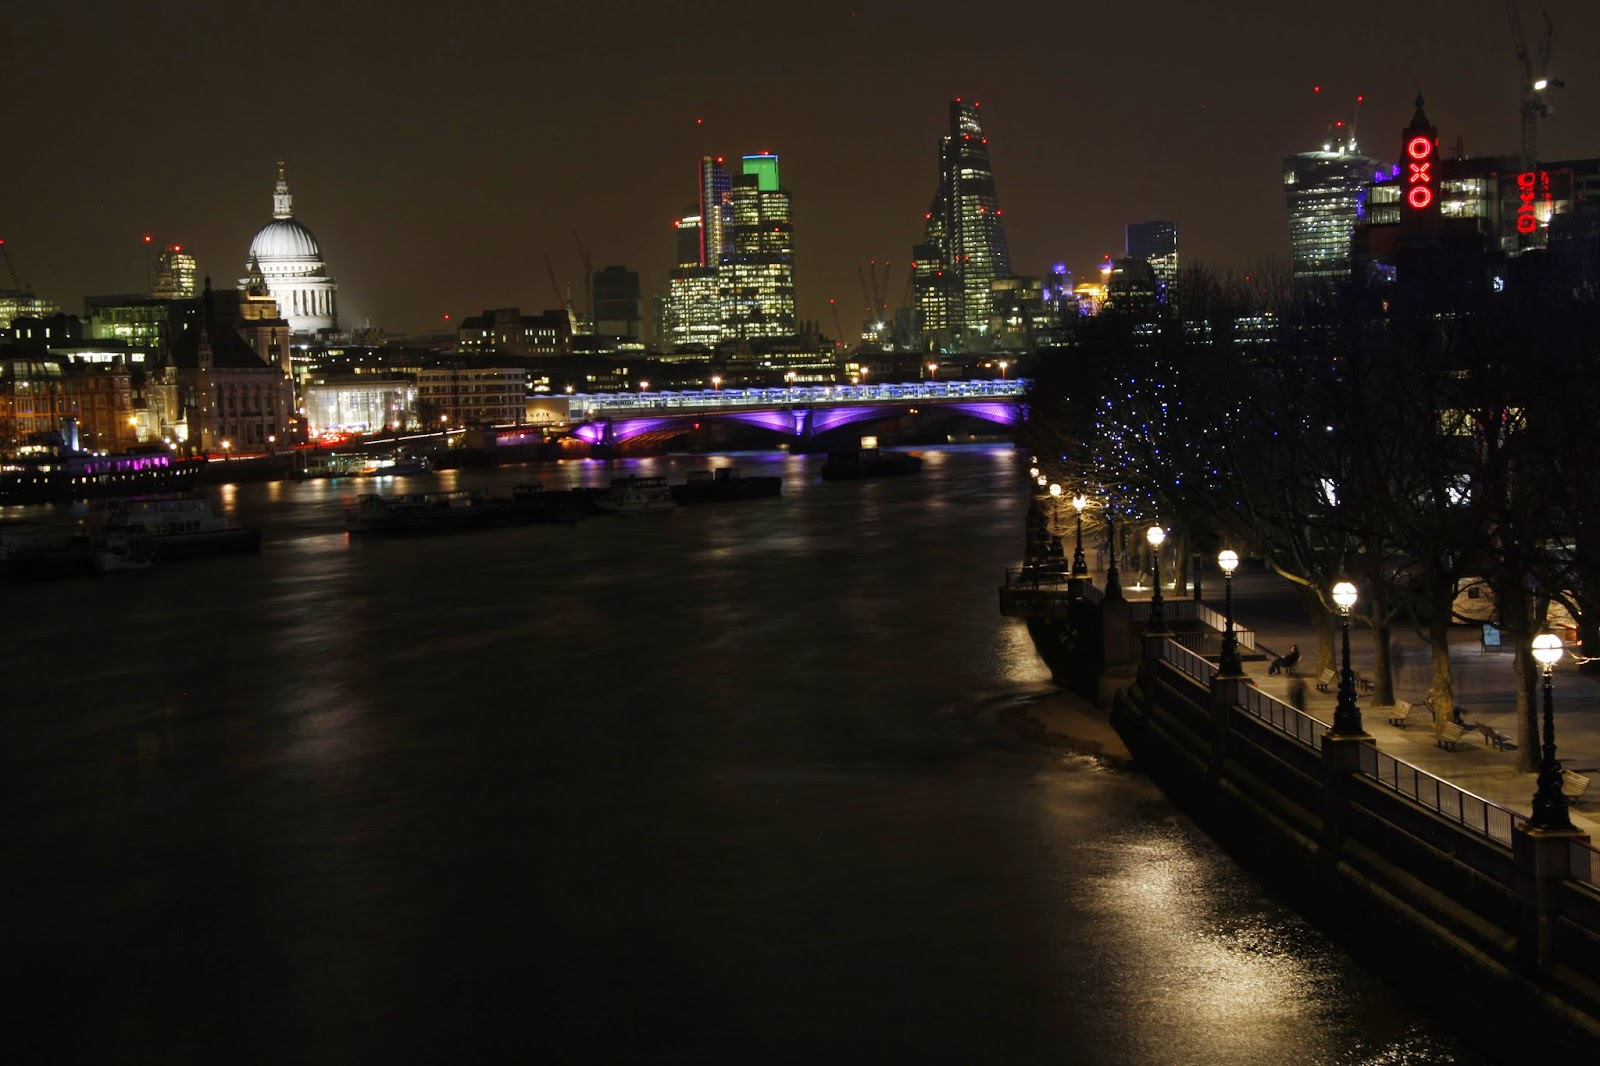 London at Night from Waterloo Bridge